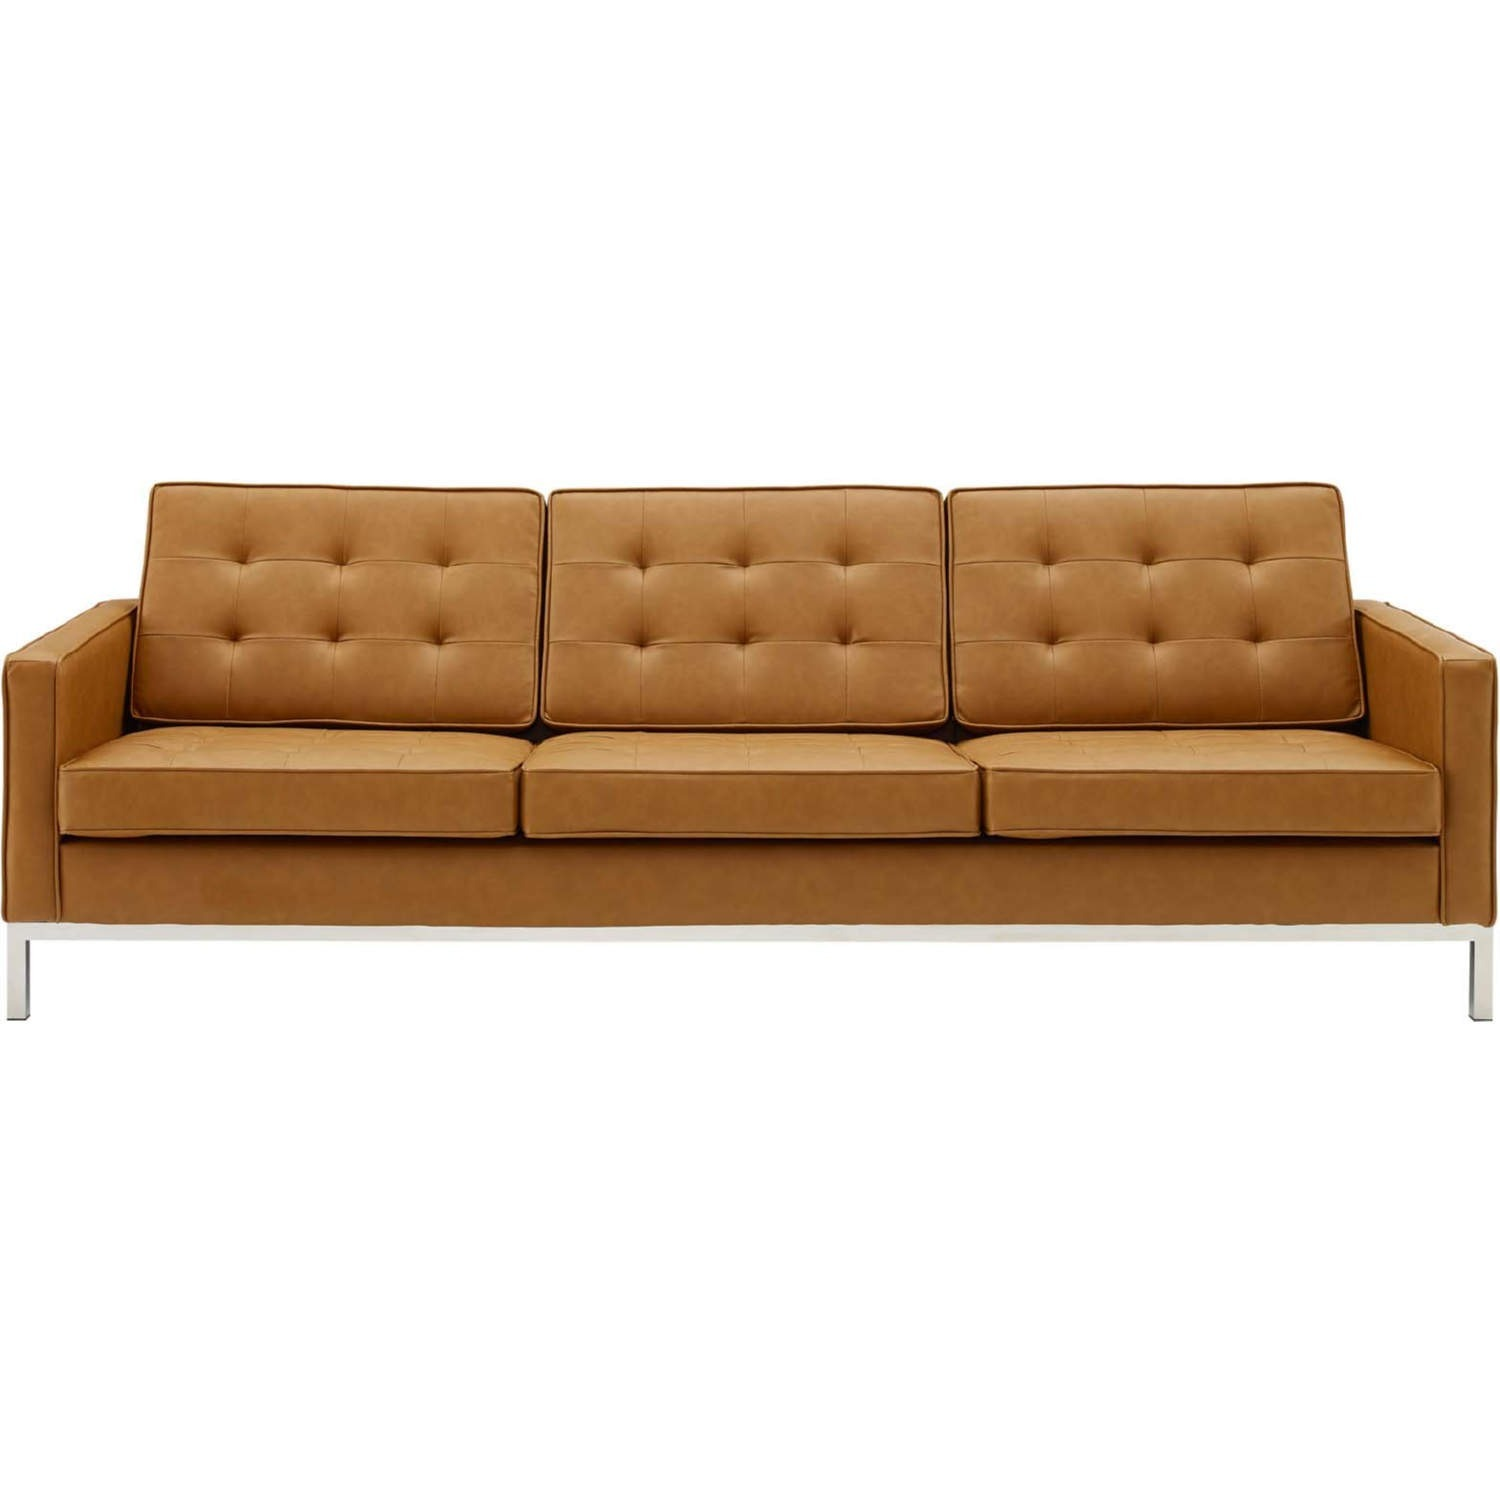 Modern Sofa In Tan Faux Leather Upholstery - image-0